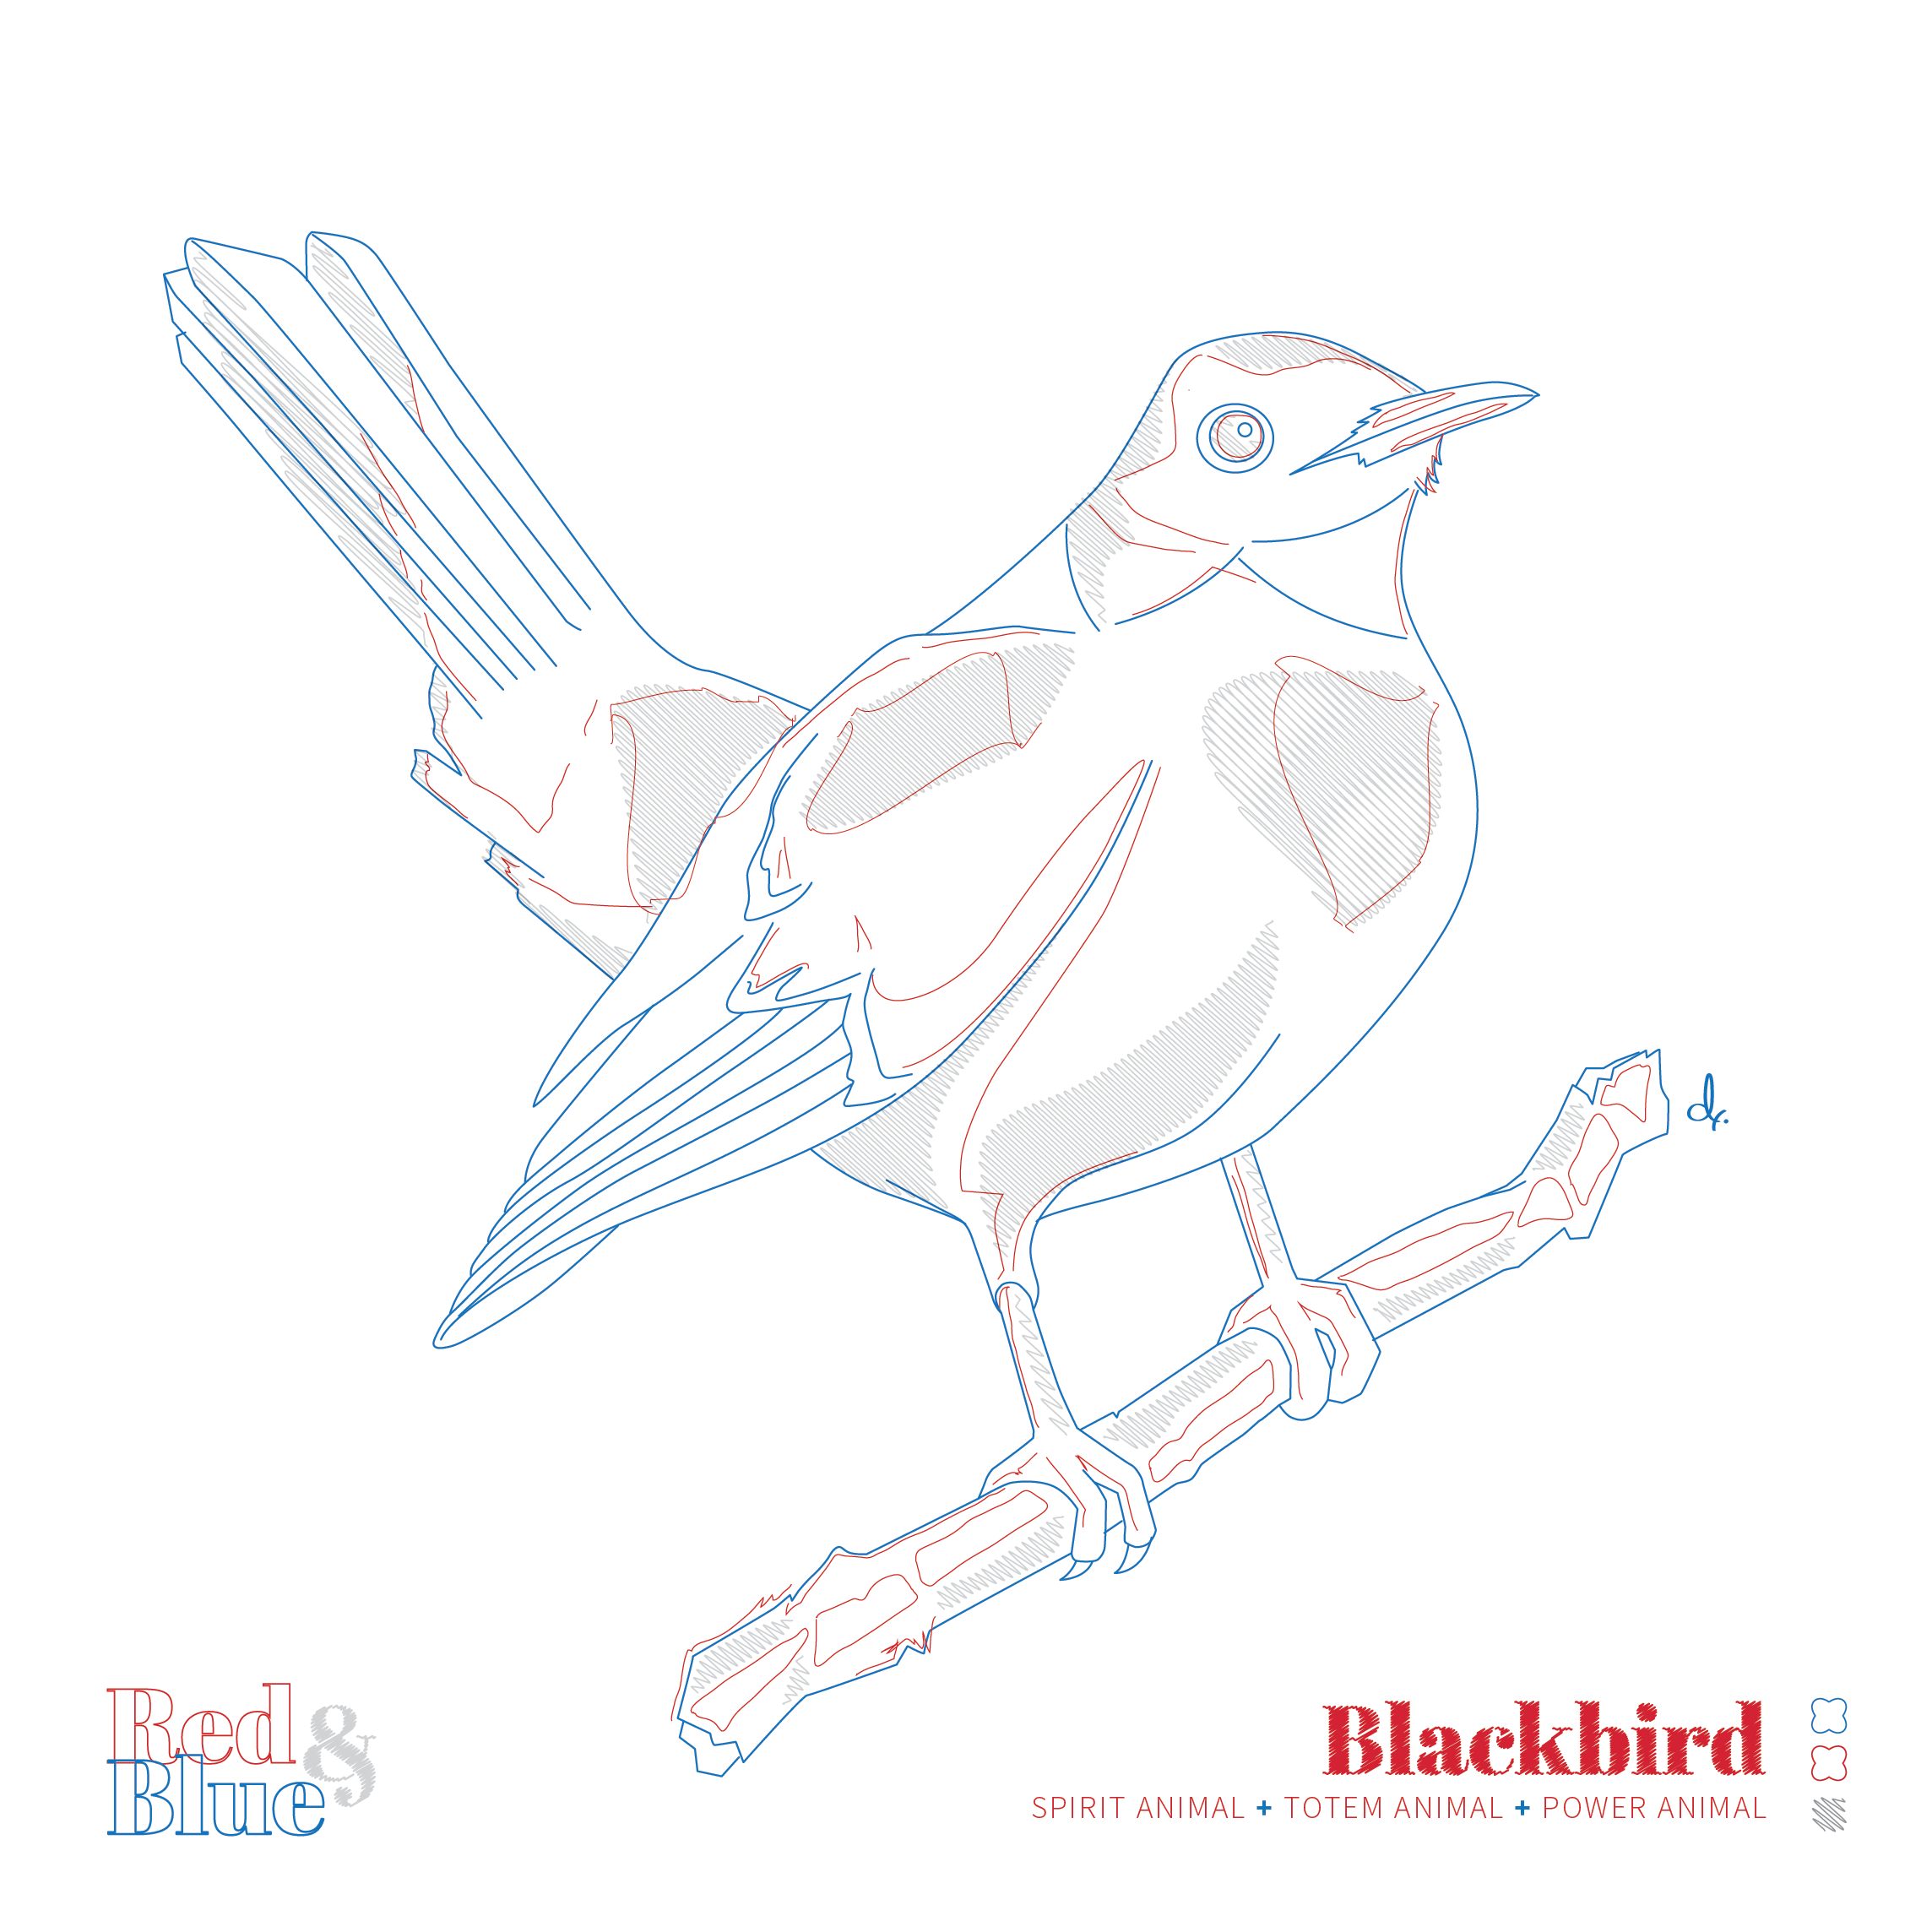 Blackbird Red and Blue Symbolism and Meaning